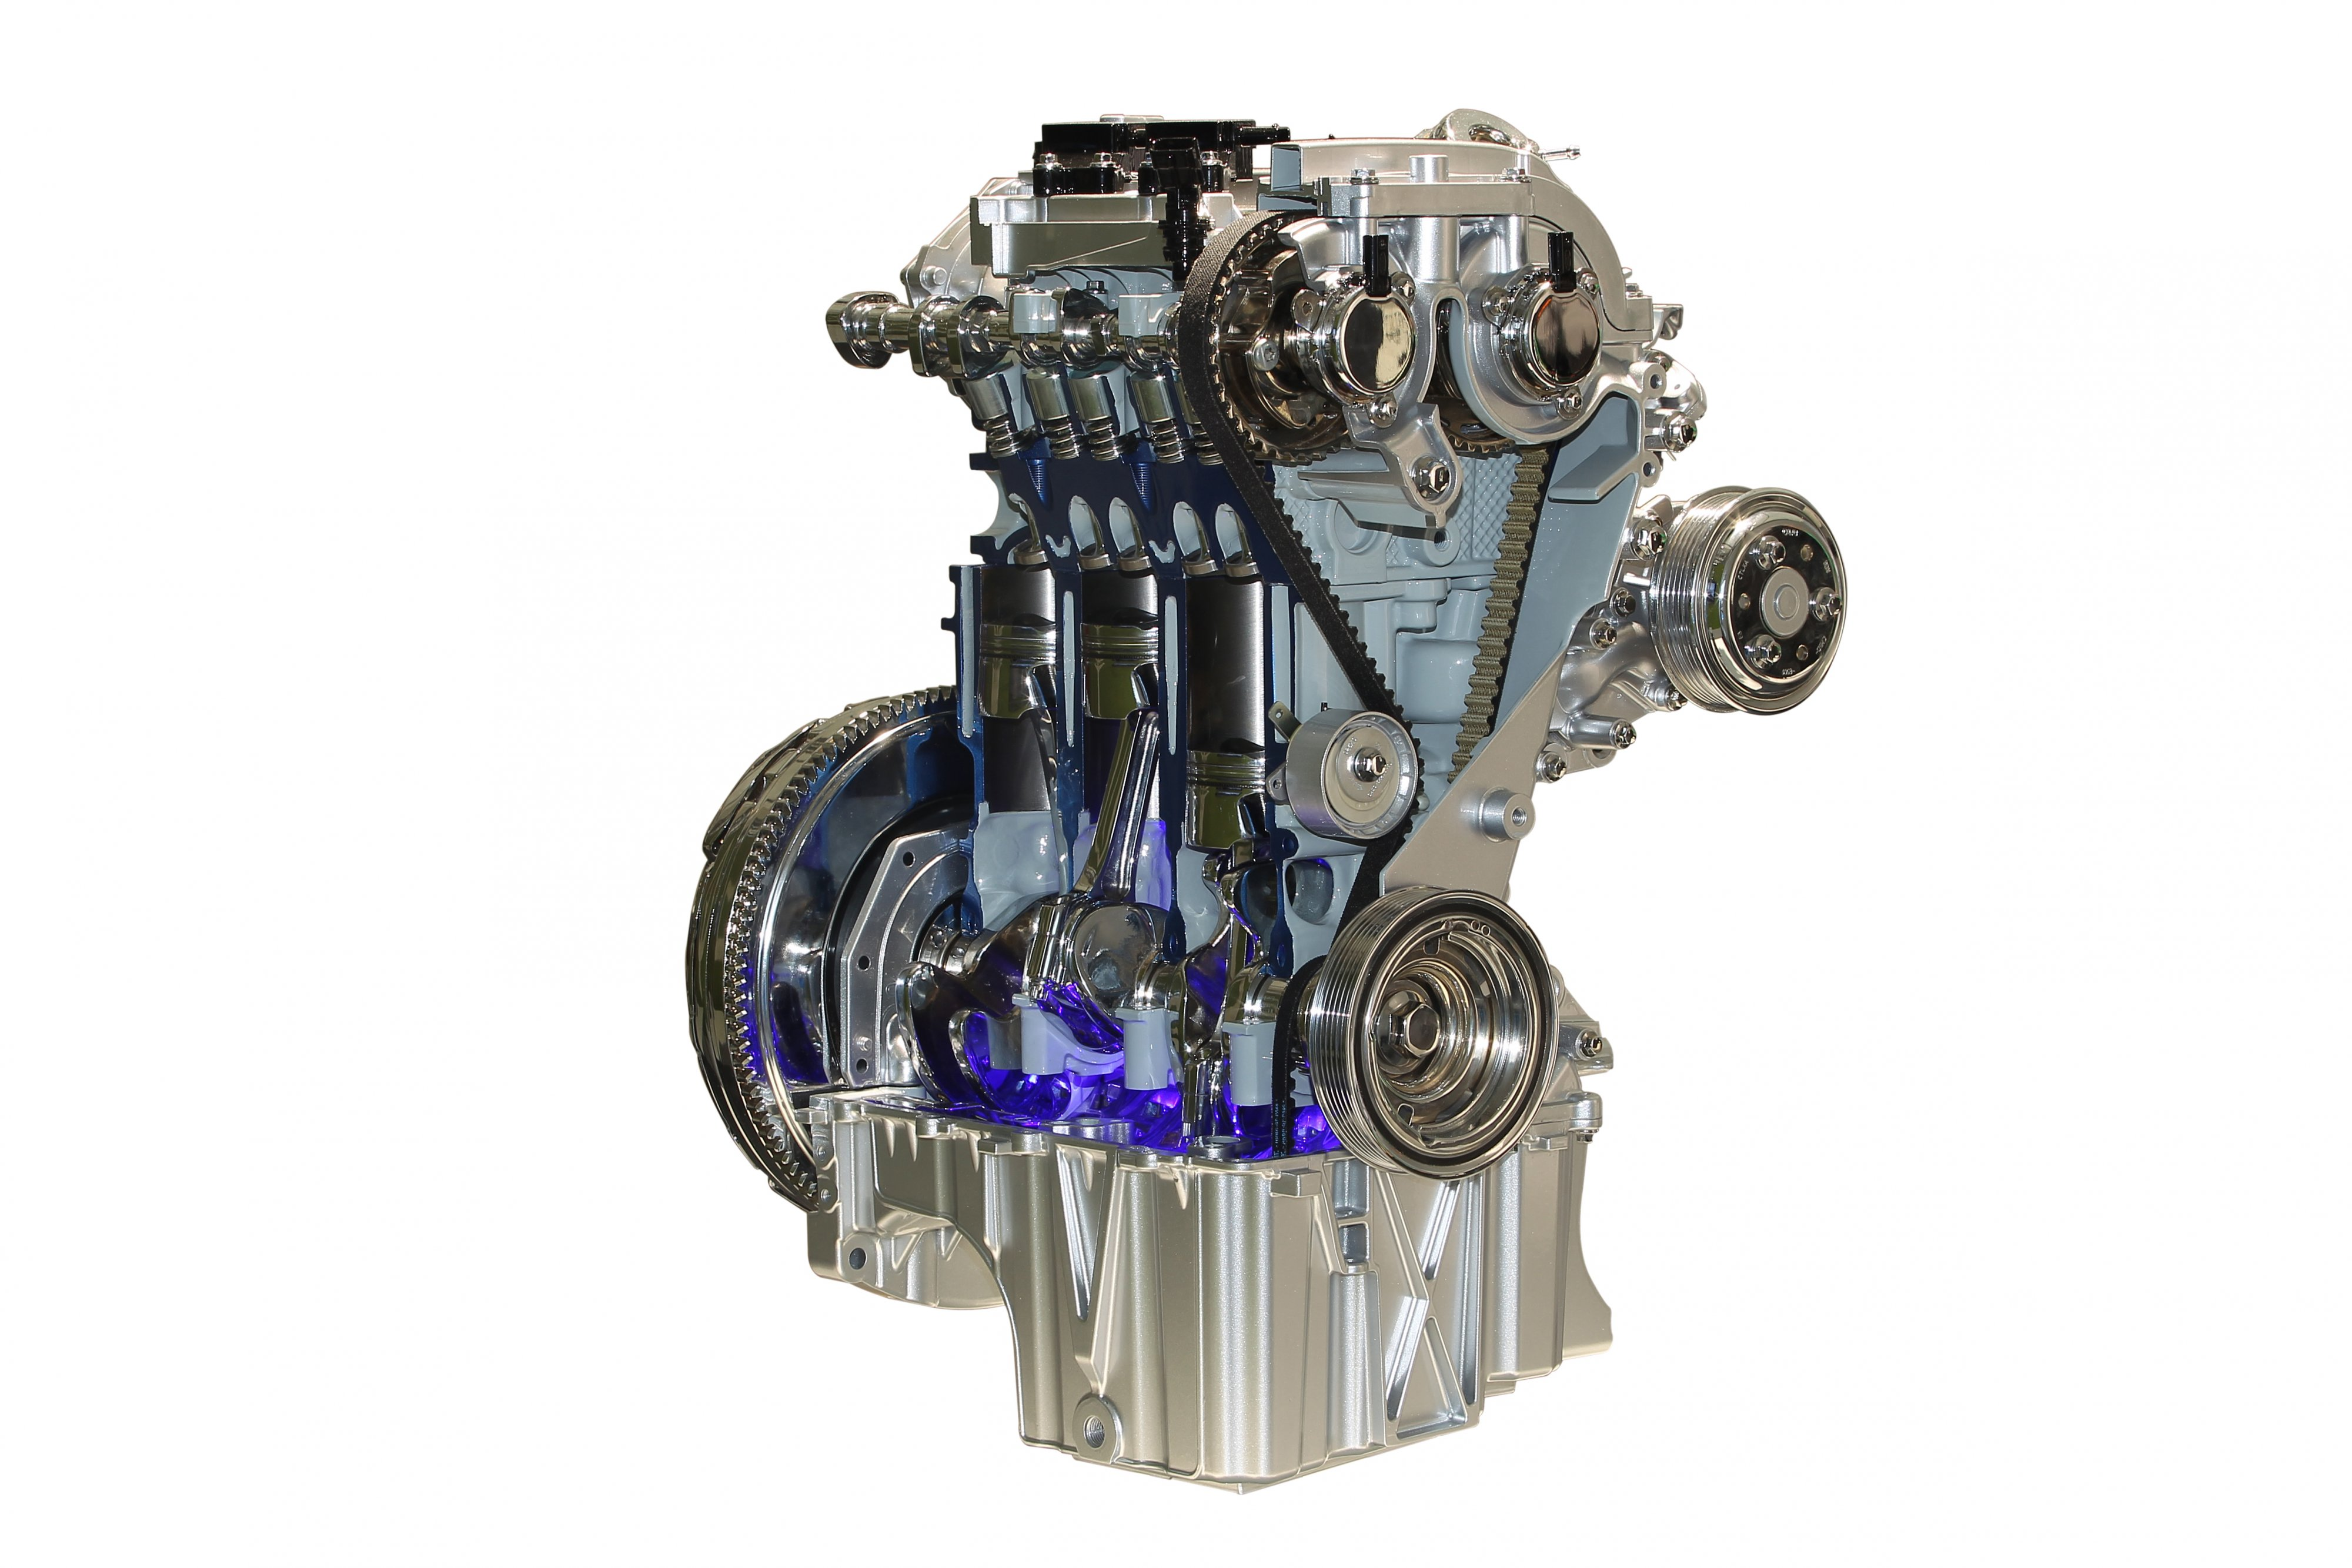 ecoboost-engine-motor